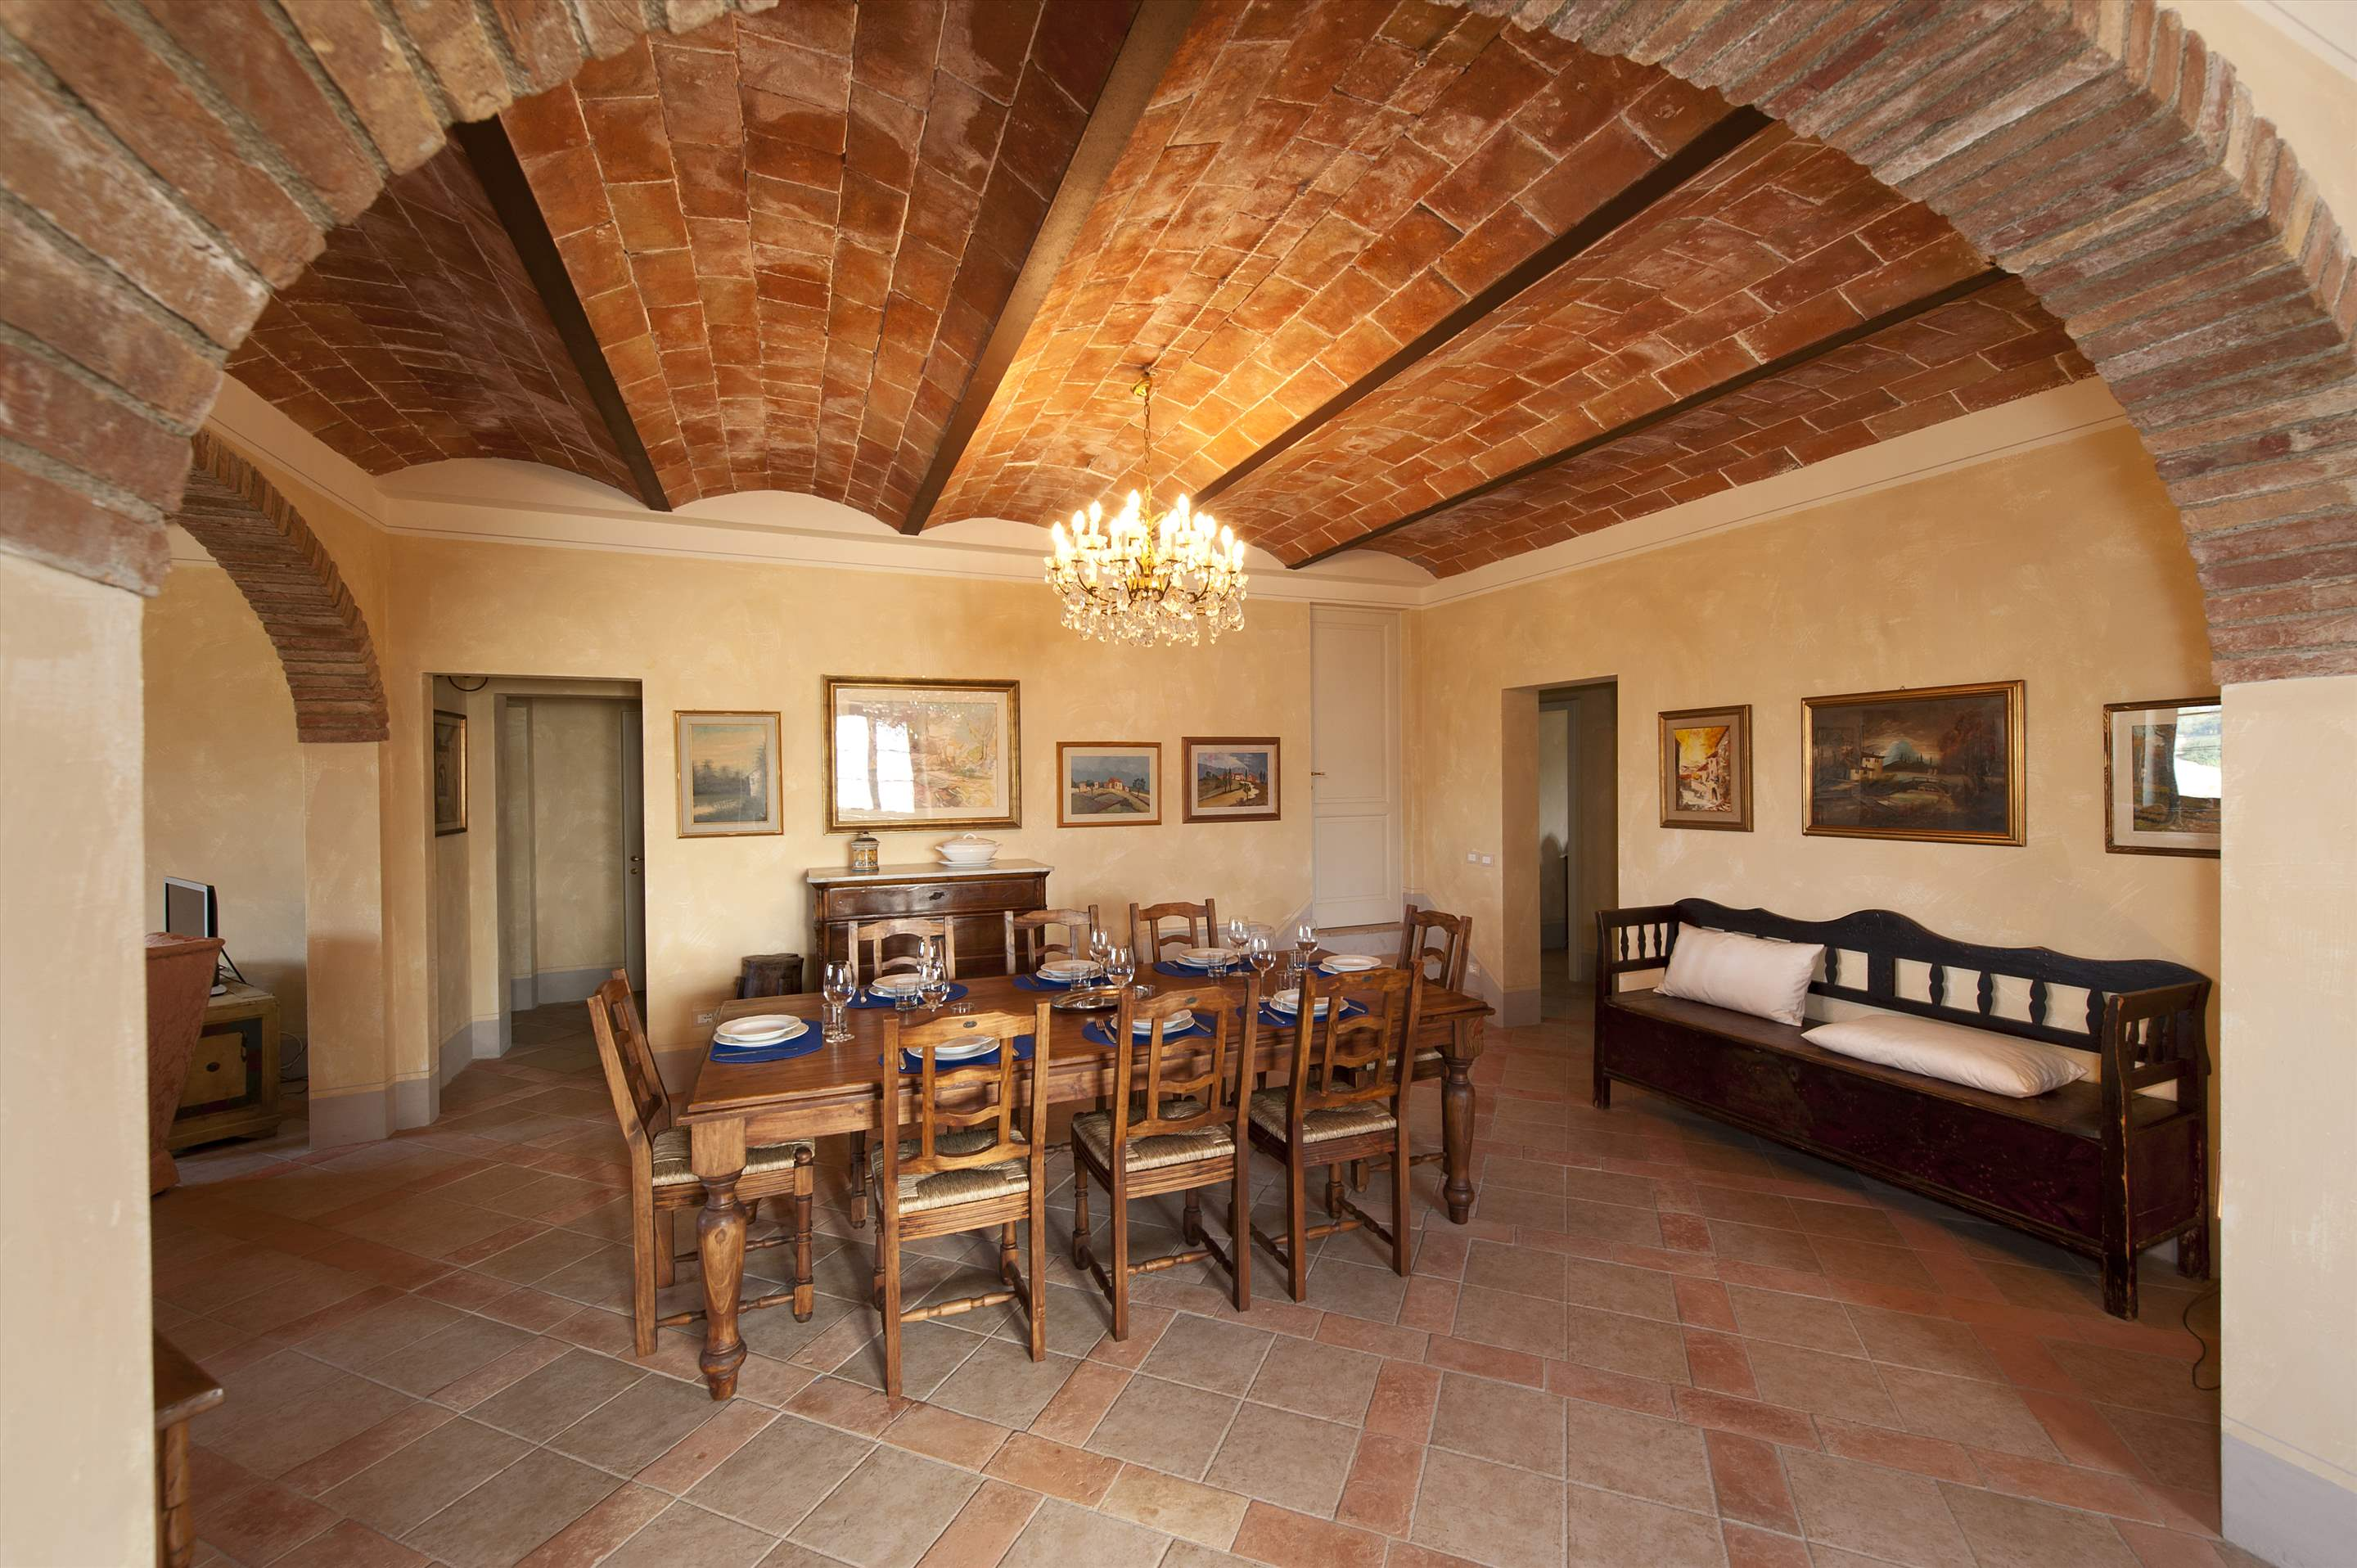 Podere Casacce, Ground Floor, 4 bedroom villa in Tuscany Coast, Tuscany Photo #11